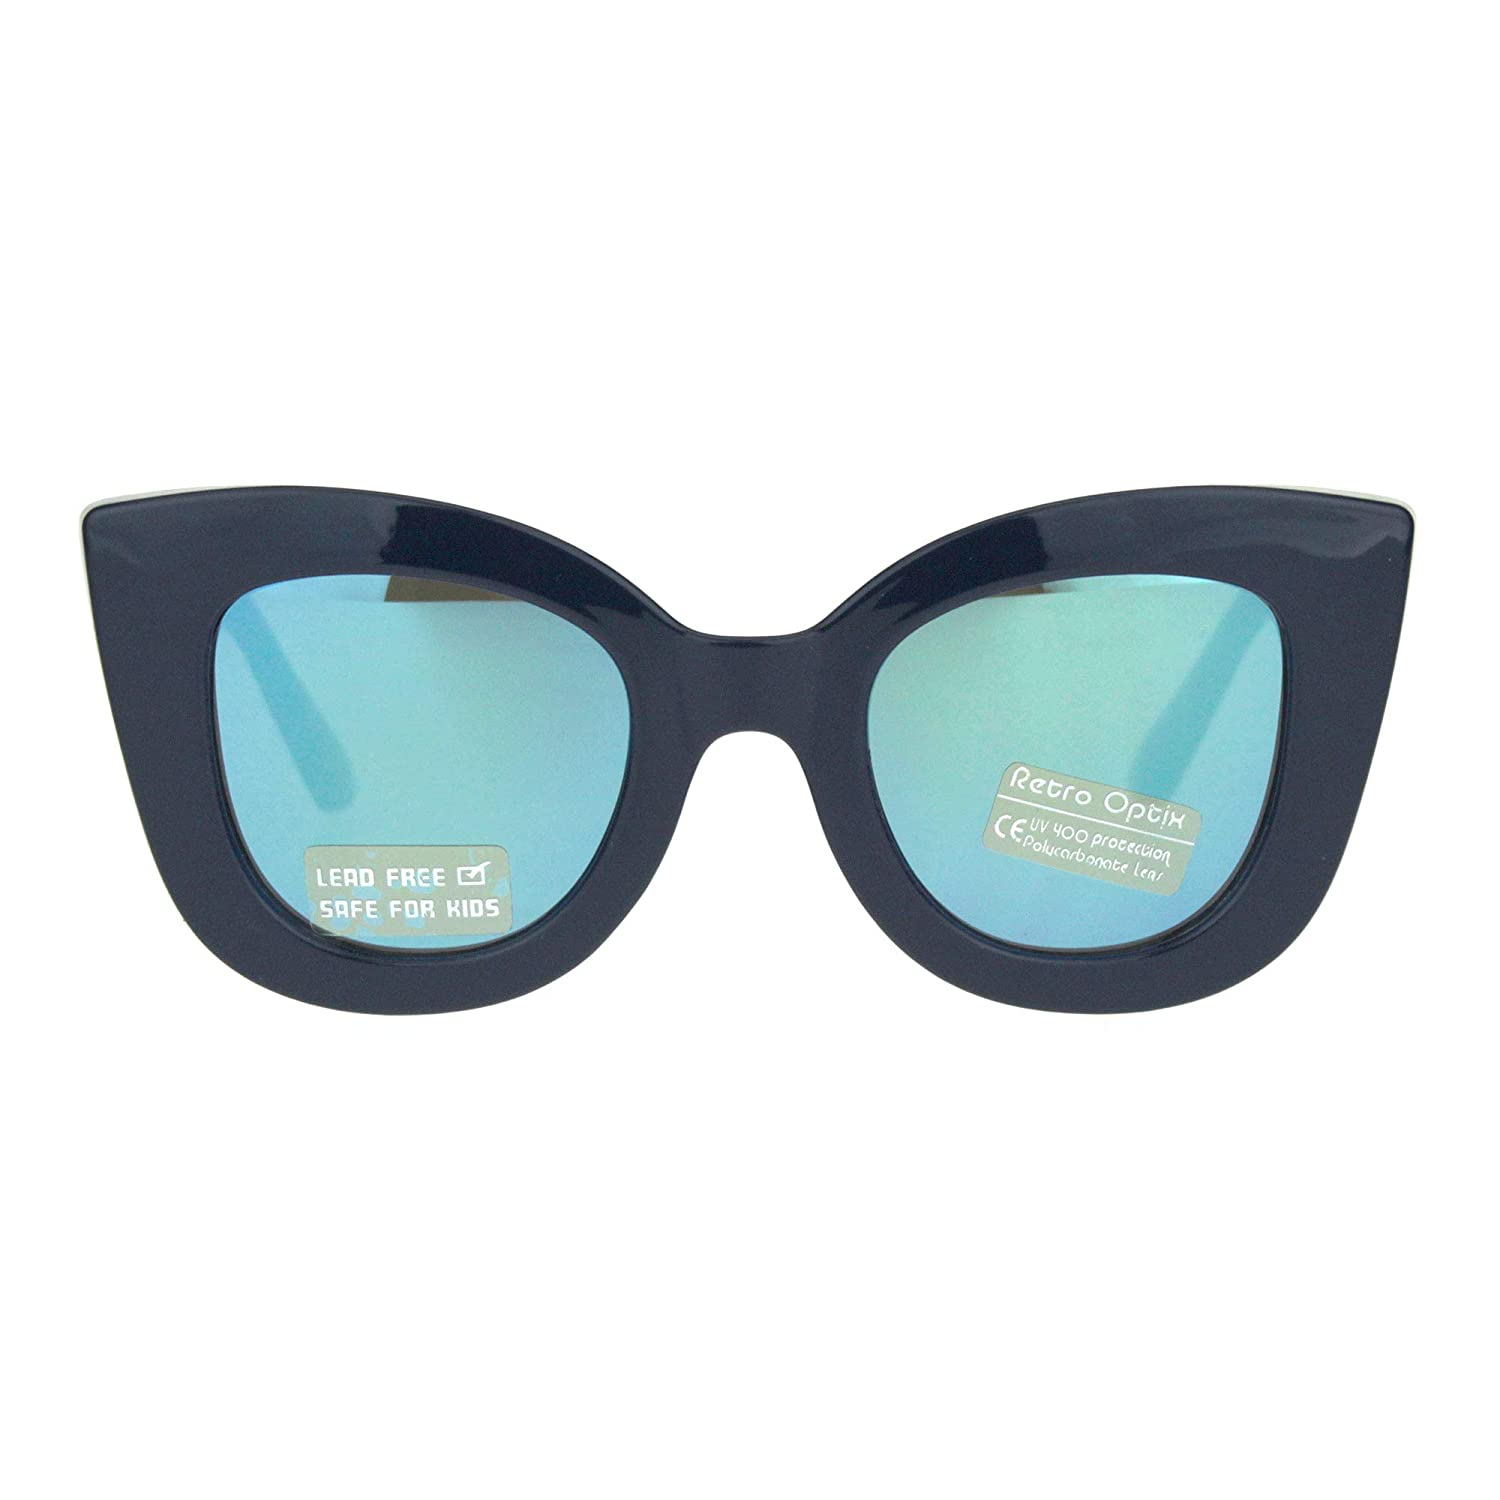 Kids Size Girls Thick Plastic Cat Eye Retro Fashion Sunglasses kgrom90064-bkbk